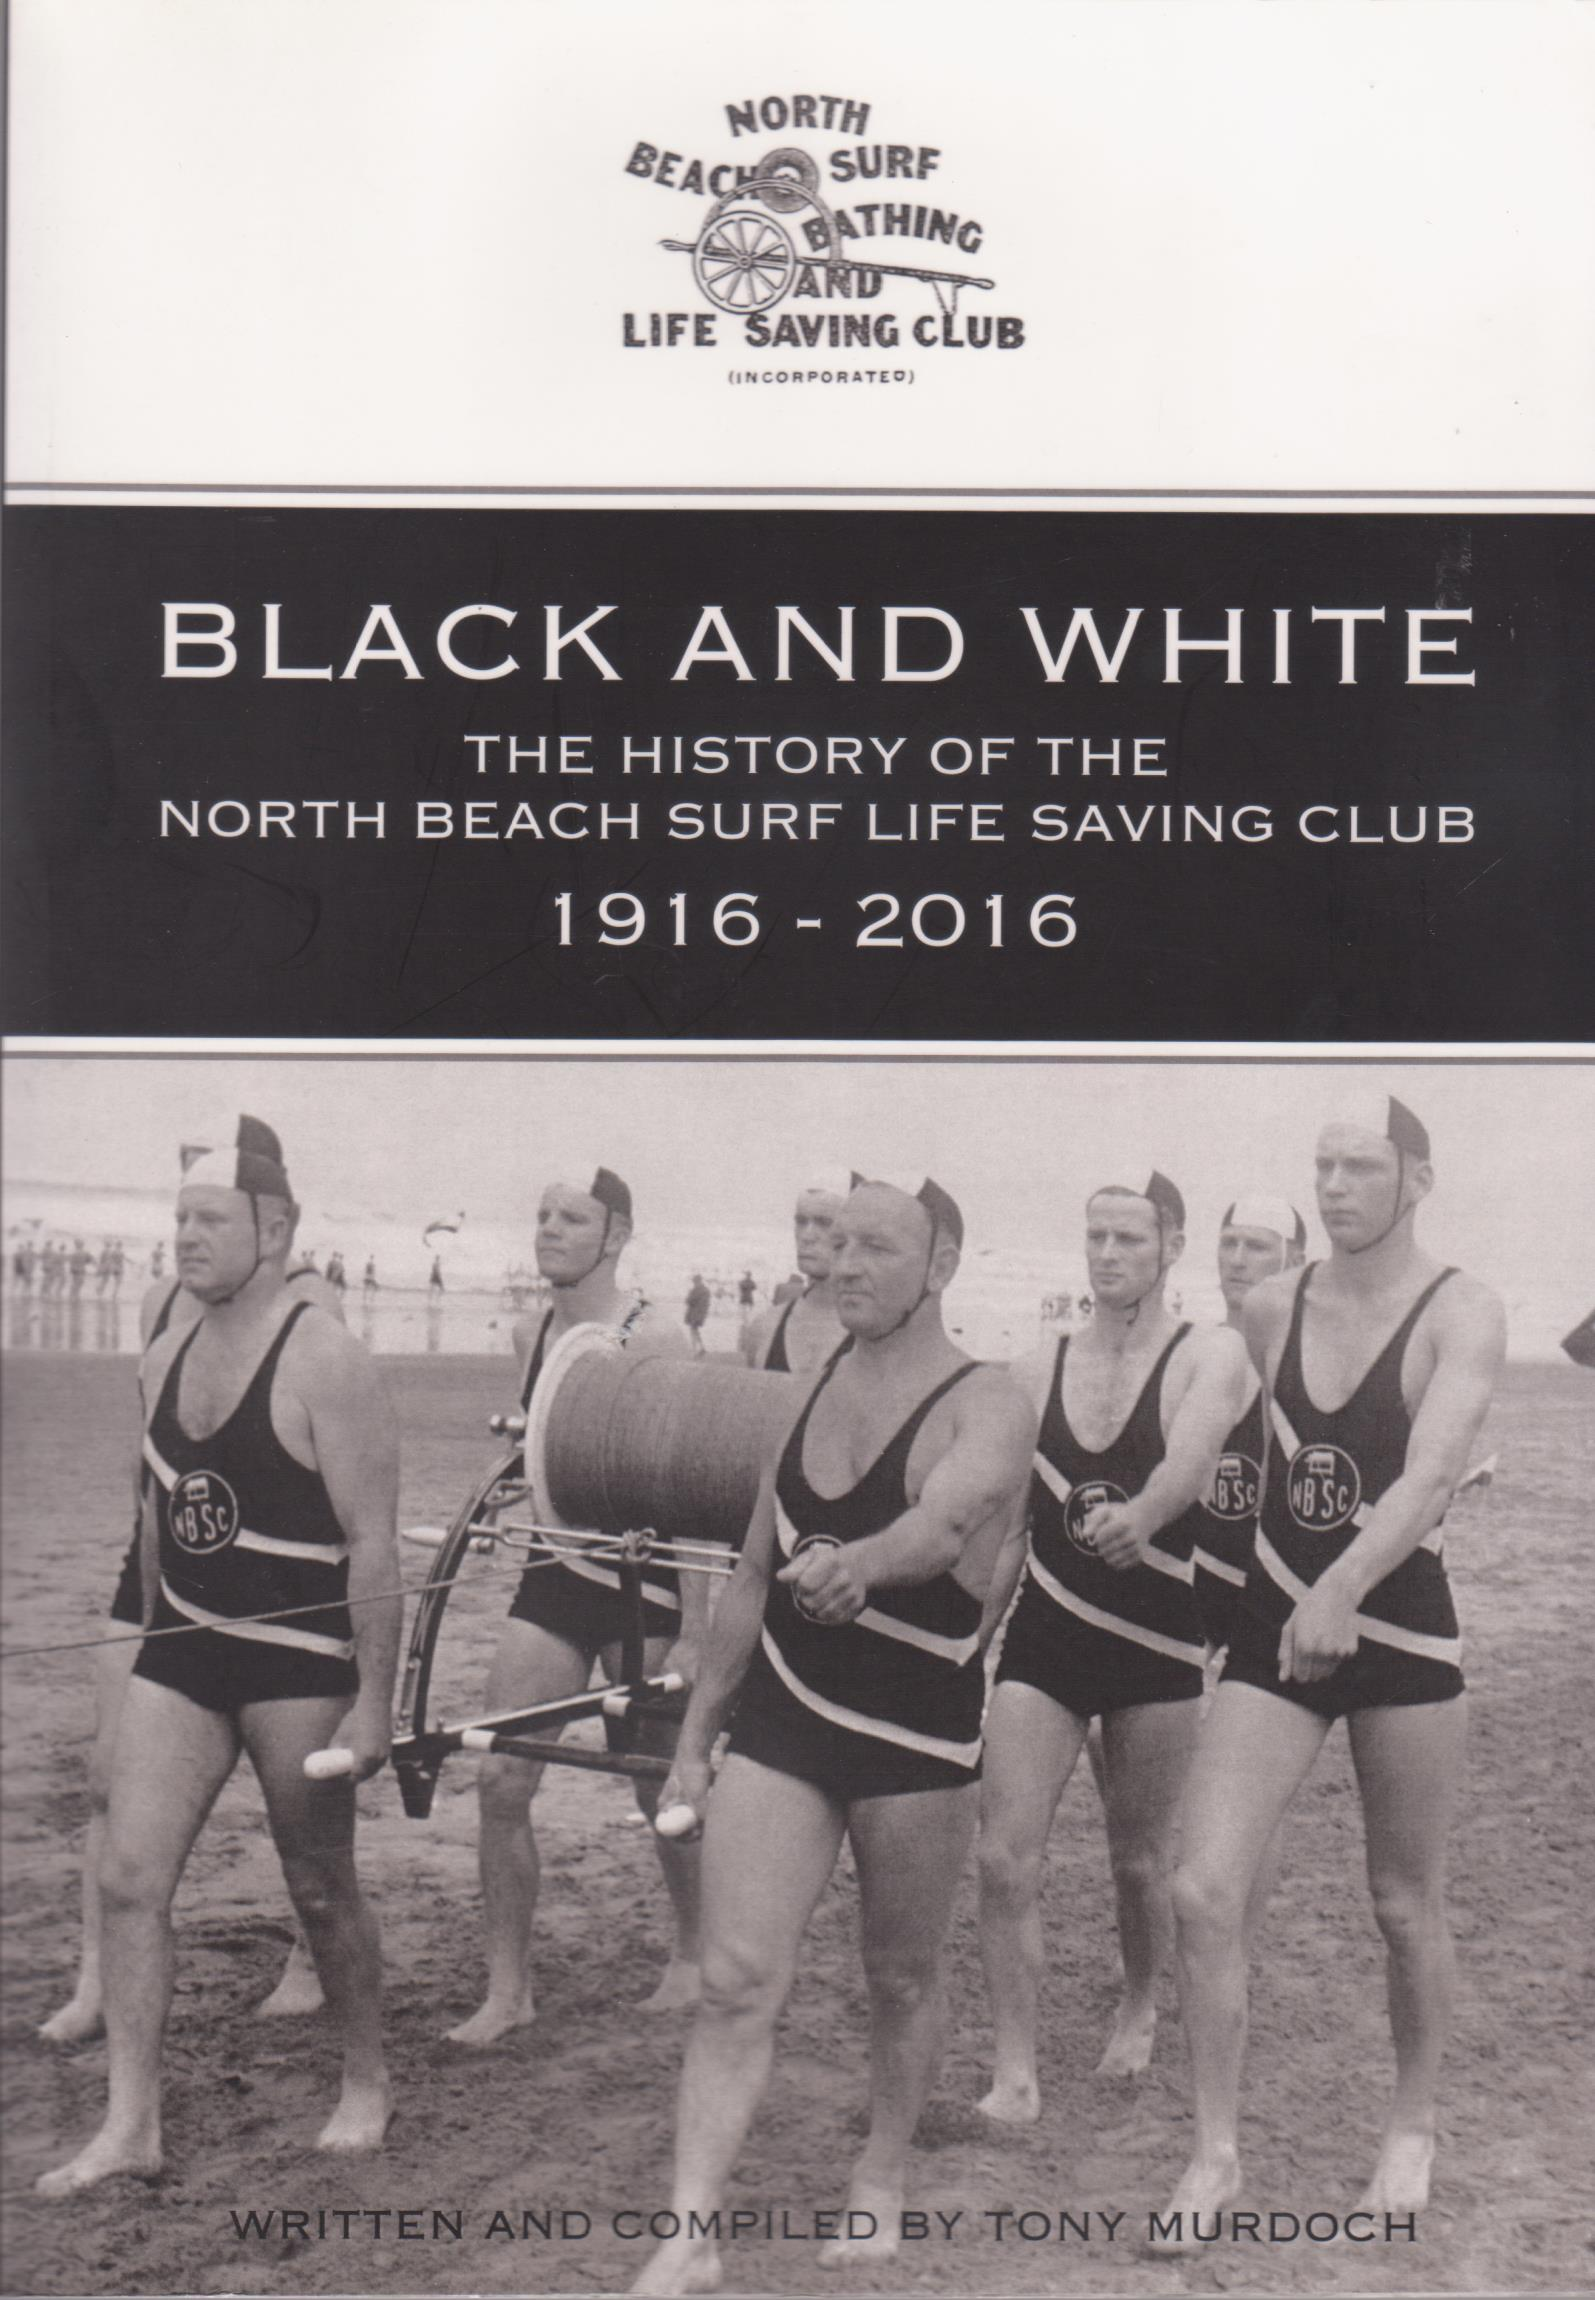 cover image of Black and White; The History of the North Beach Surf Life Saving Club 1916-2016, for sale in New Zealand